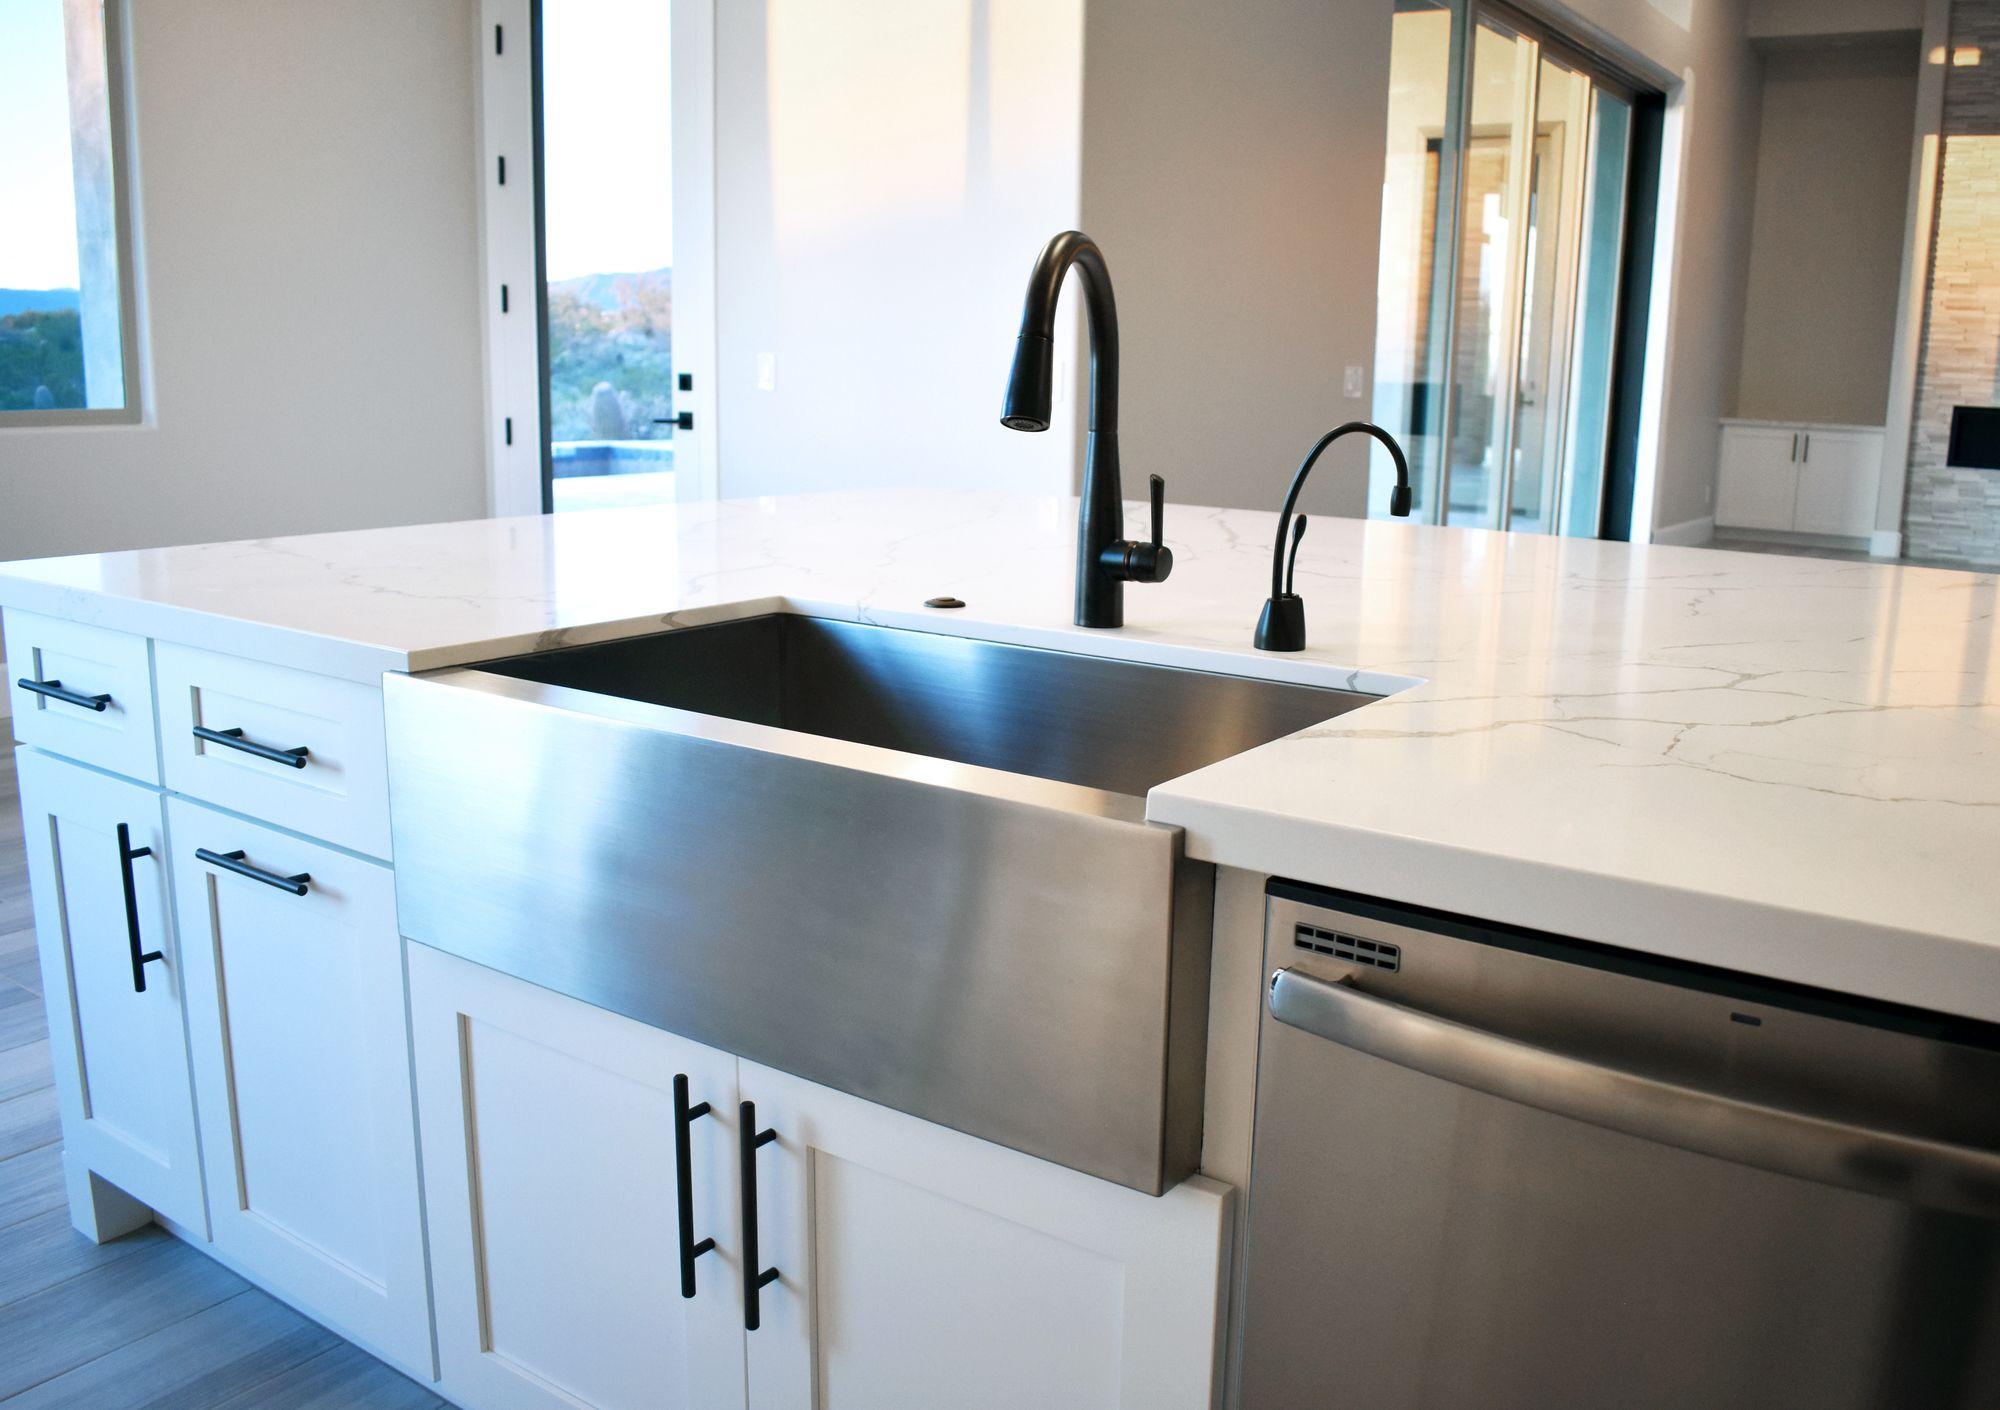 All White Kitchen with Stainless Steel Farmhouse Sink in